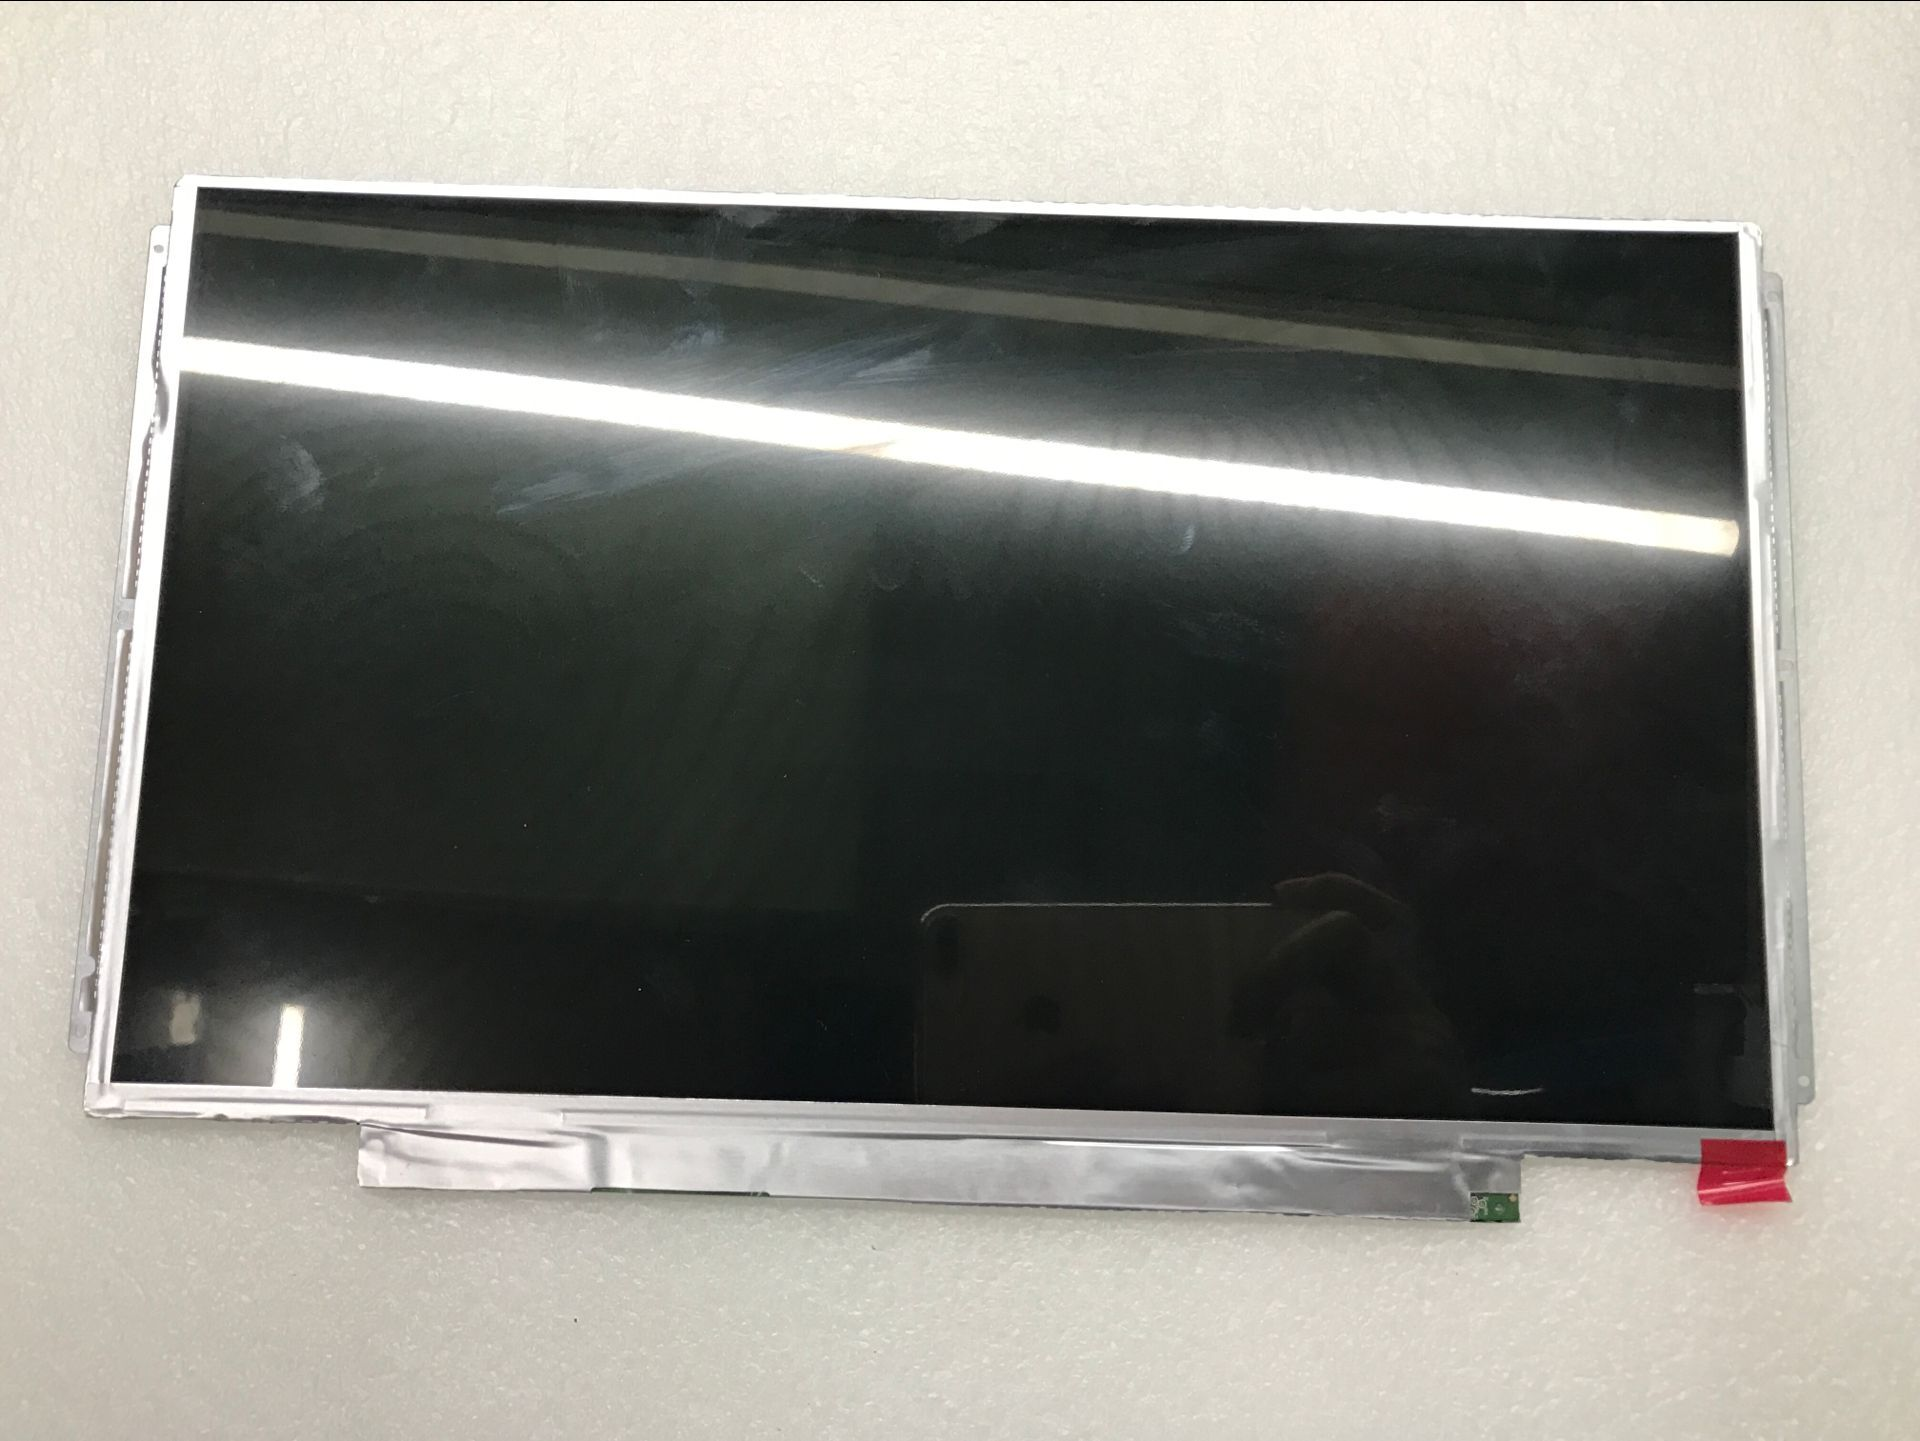 13.3 LCD Laptop LED Screen For HP PAVILION DM3-2010US DM3-3011NR CLAA133WB01A стоимость